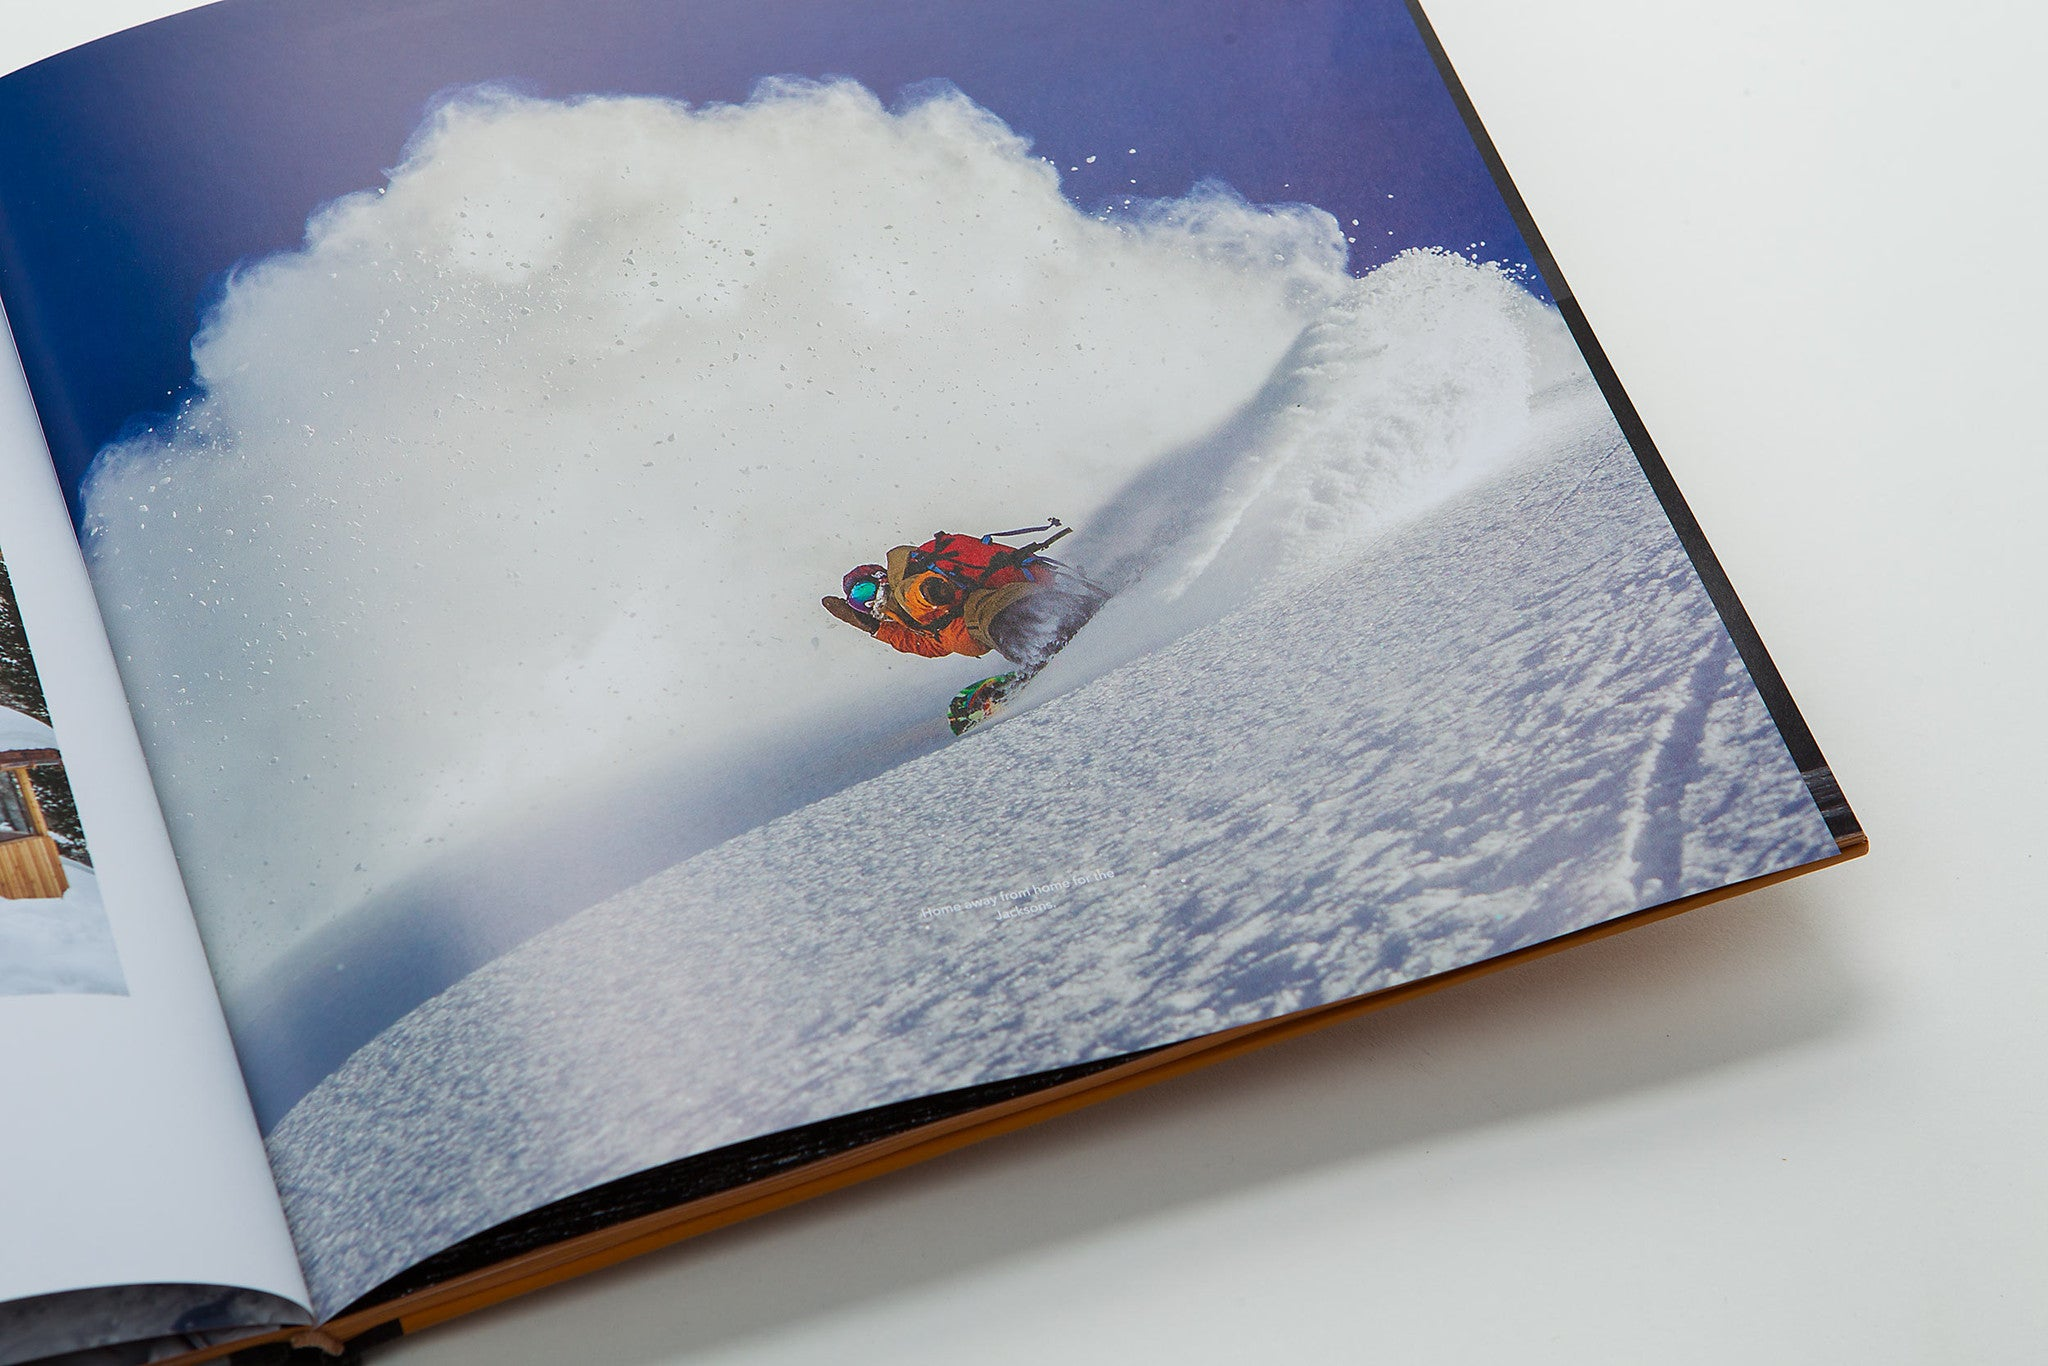 TransWorld SNOWboarding presents Origins - Limited Edition Photo Book + DVD